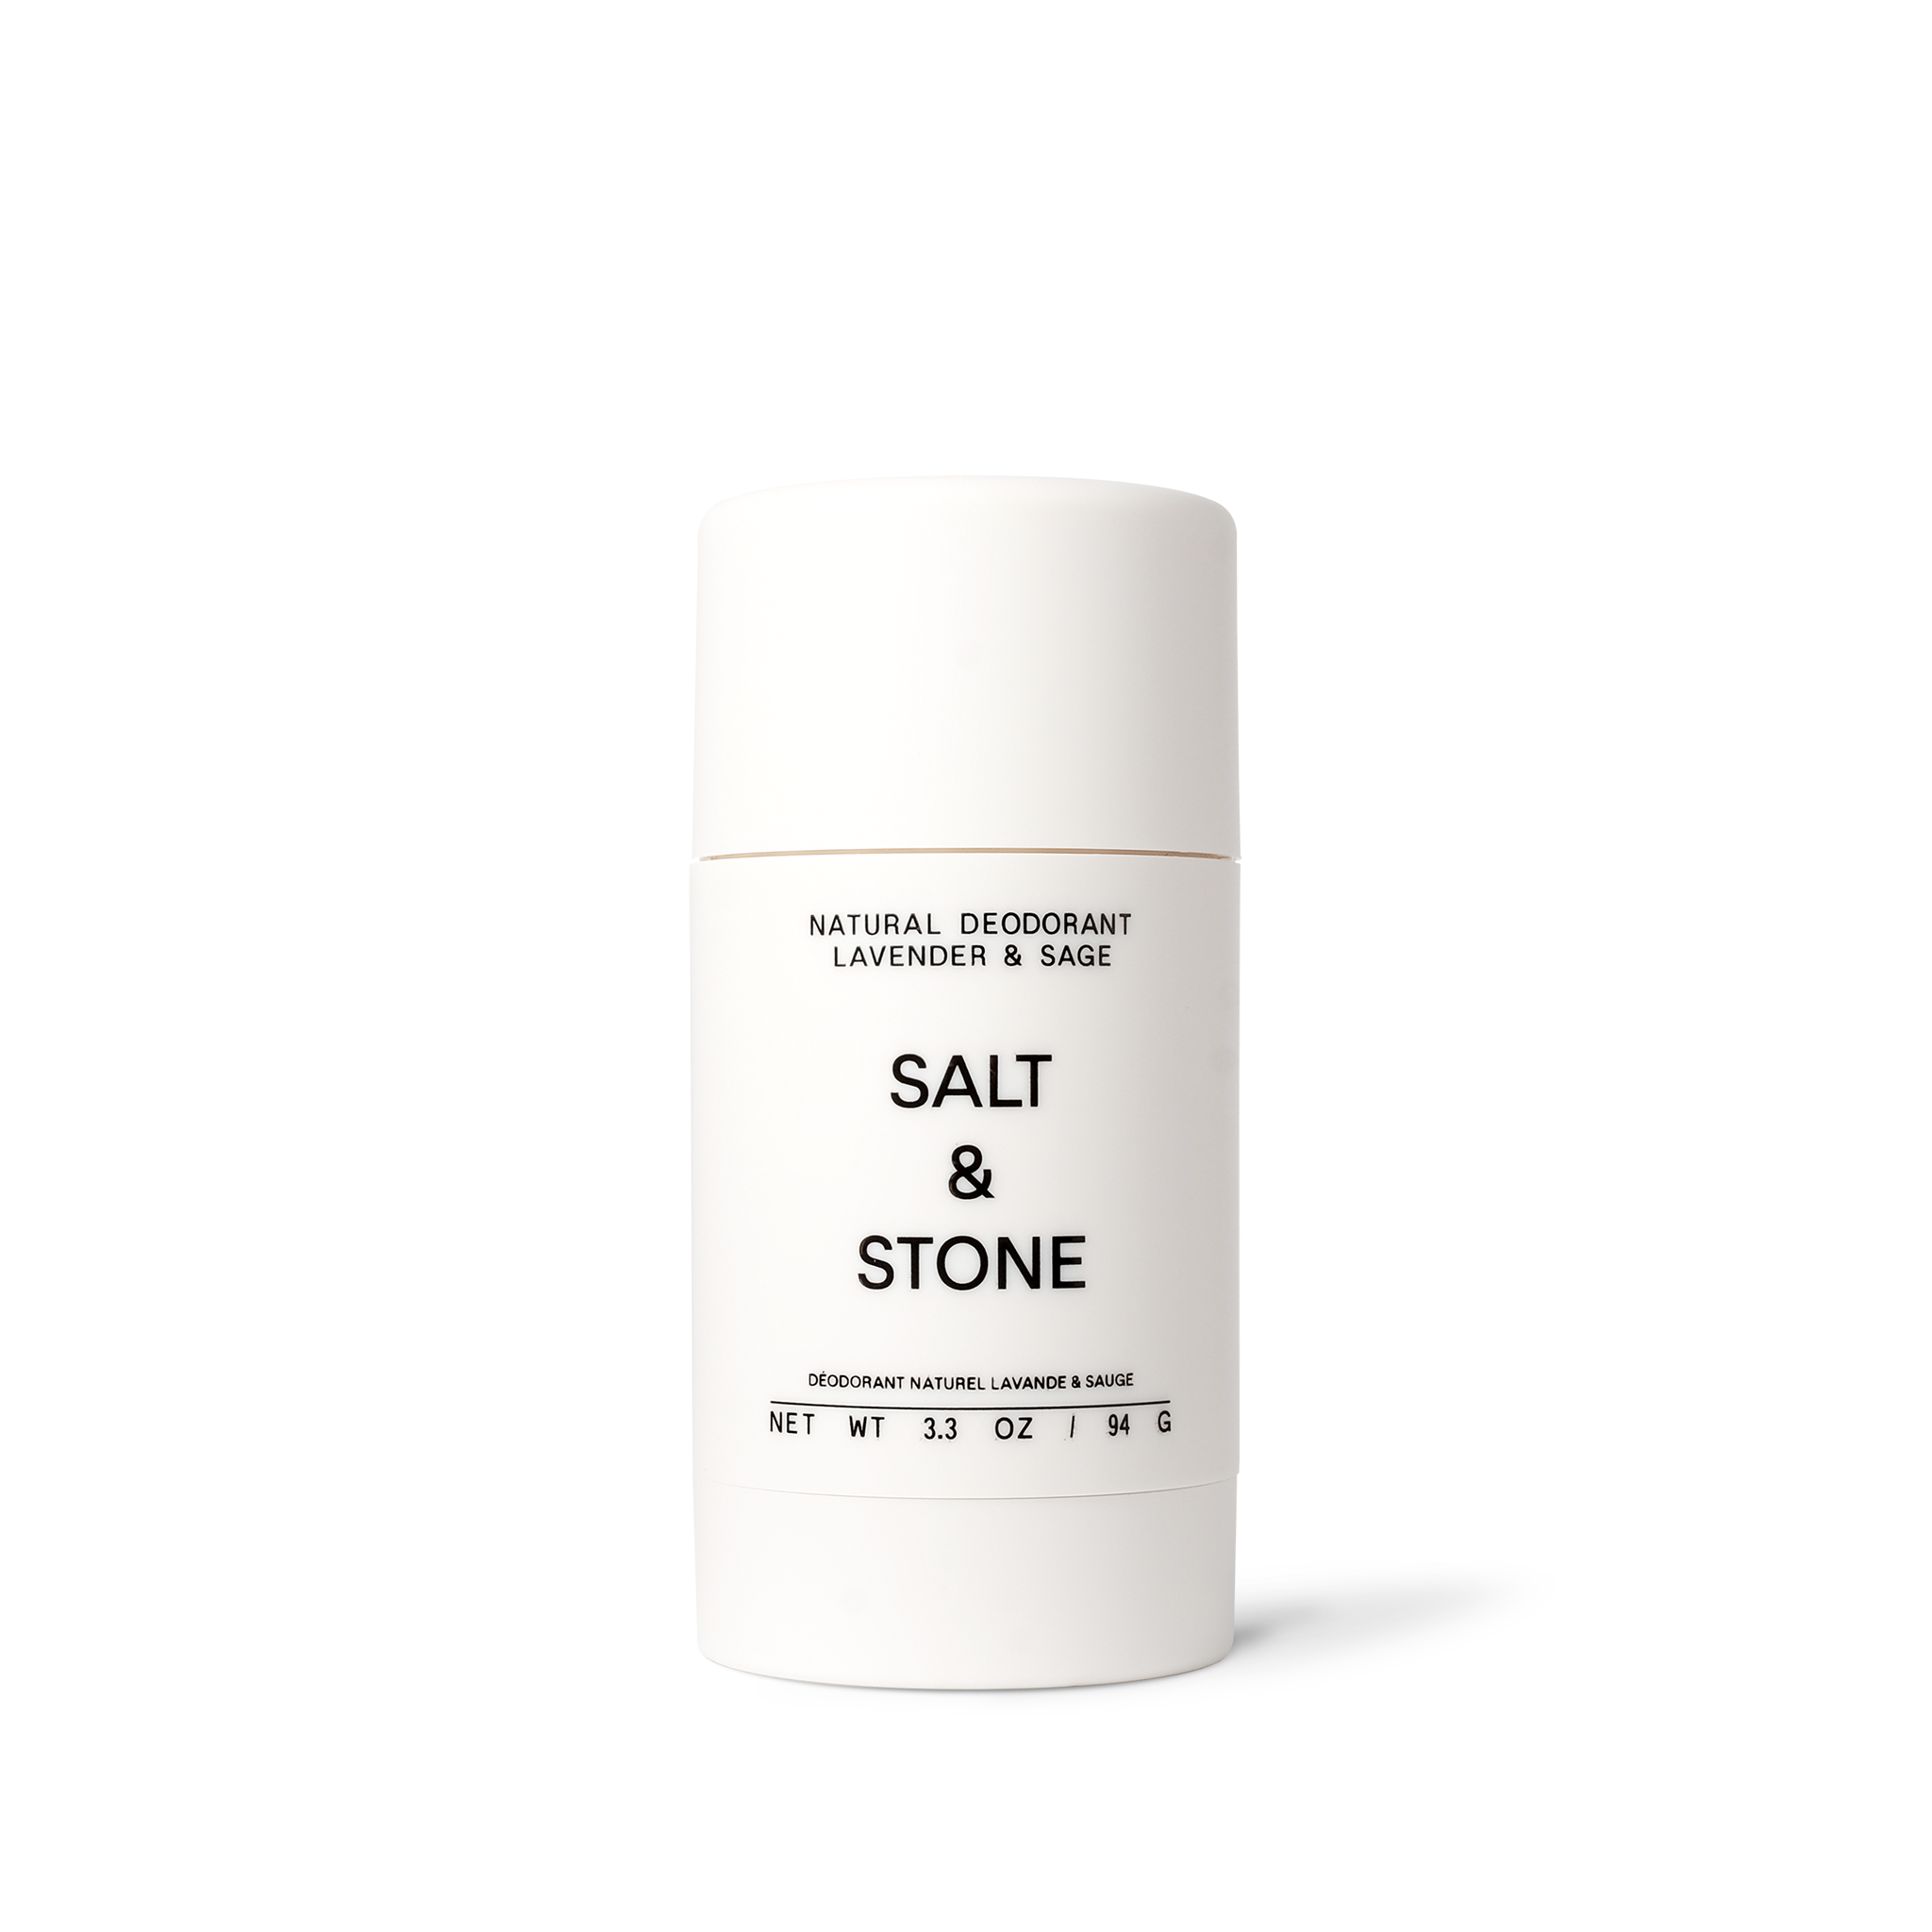 Natural Deodorant, Salt & Stone. Photo: Salt & Stone